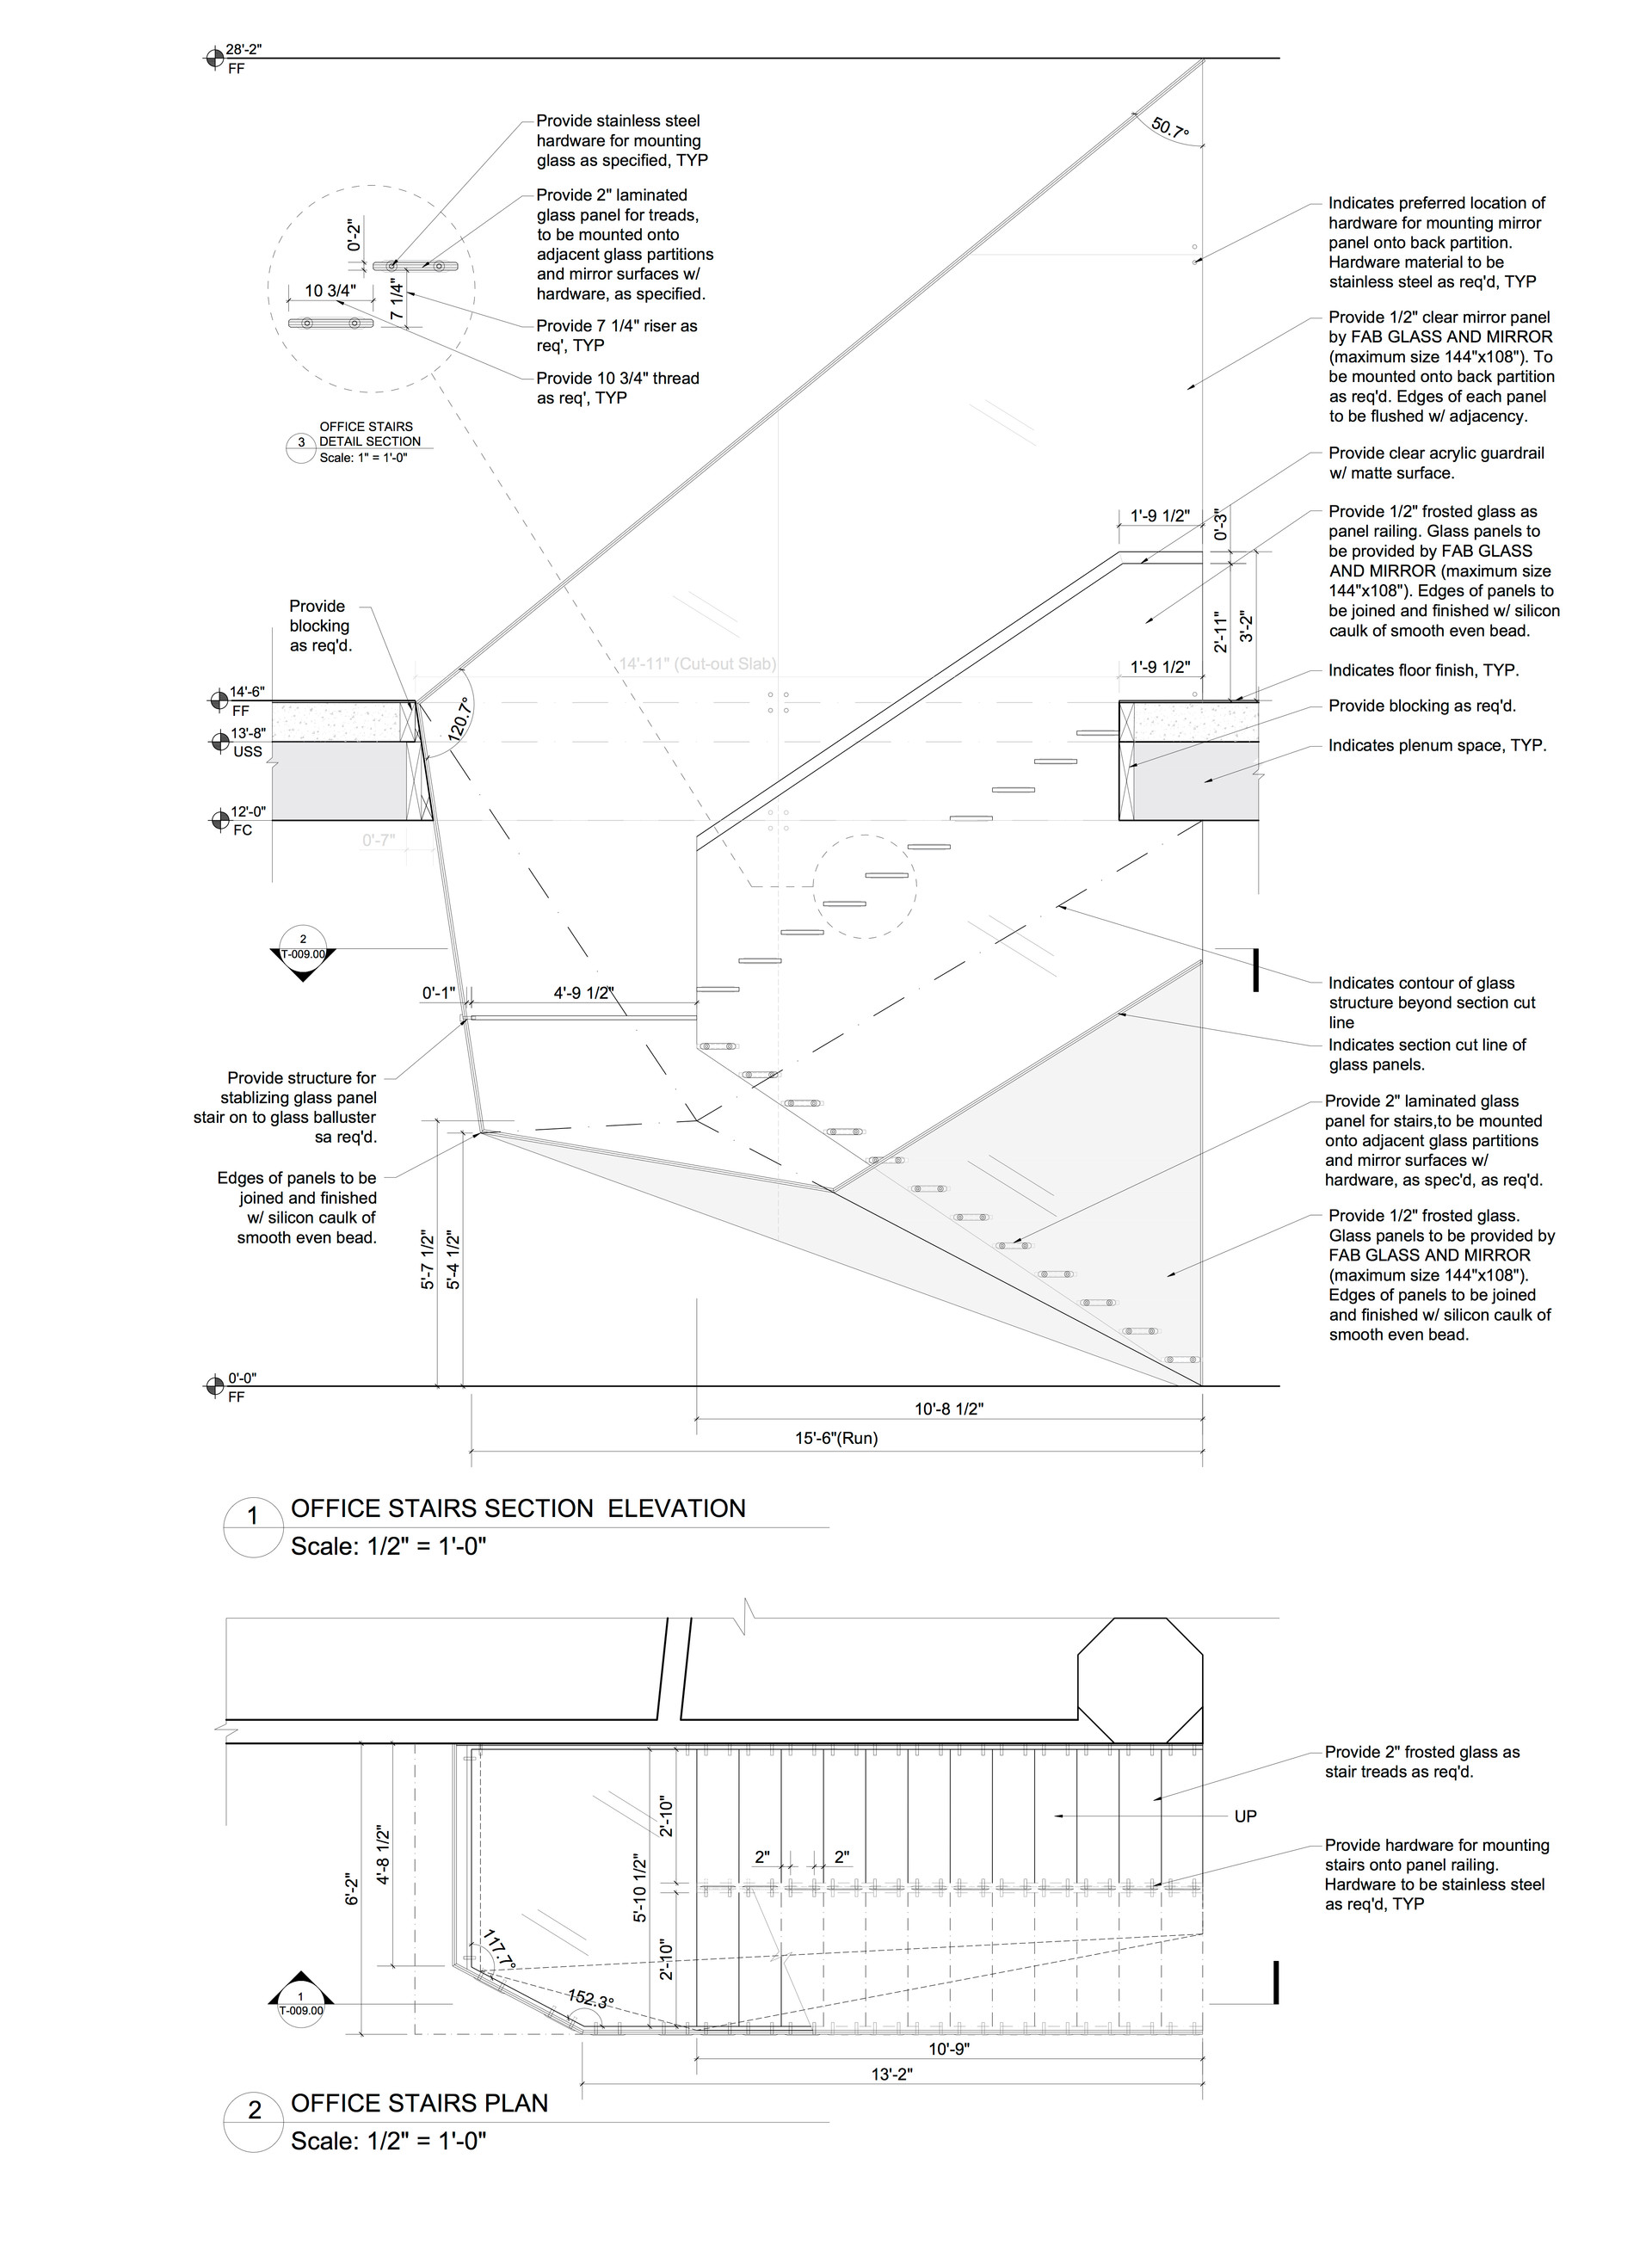 Construction Details for Stairs